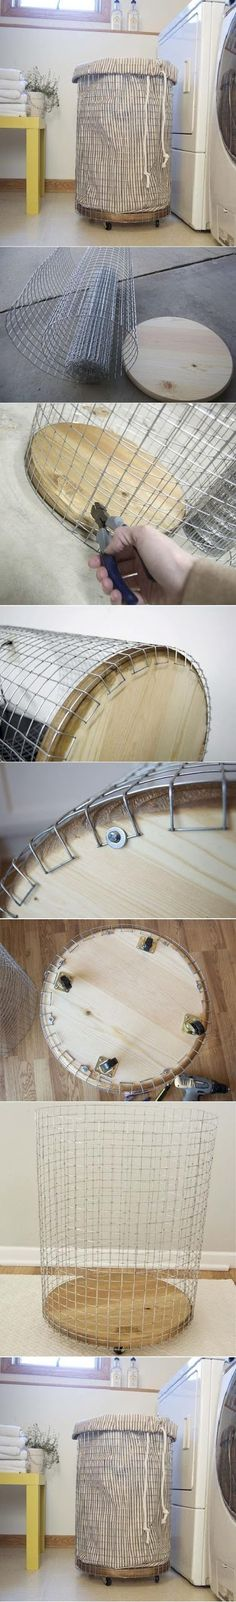 DIY : How To Make a Laundry Basket